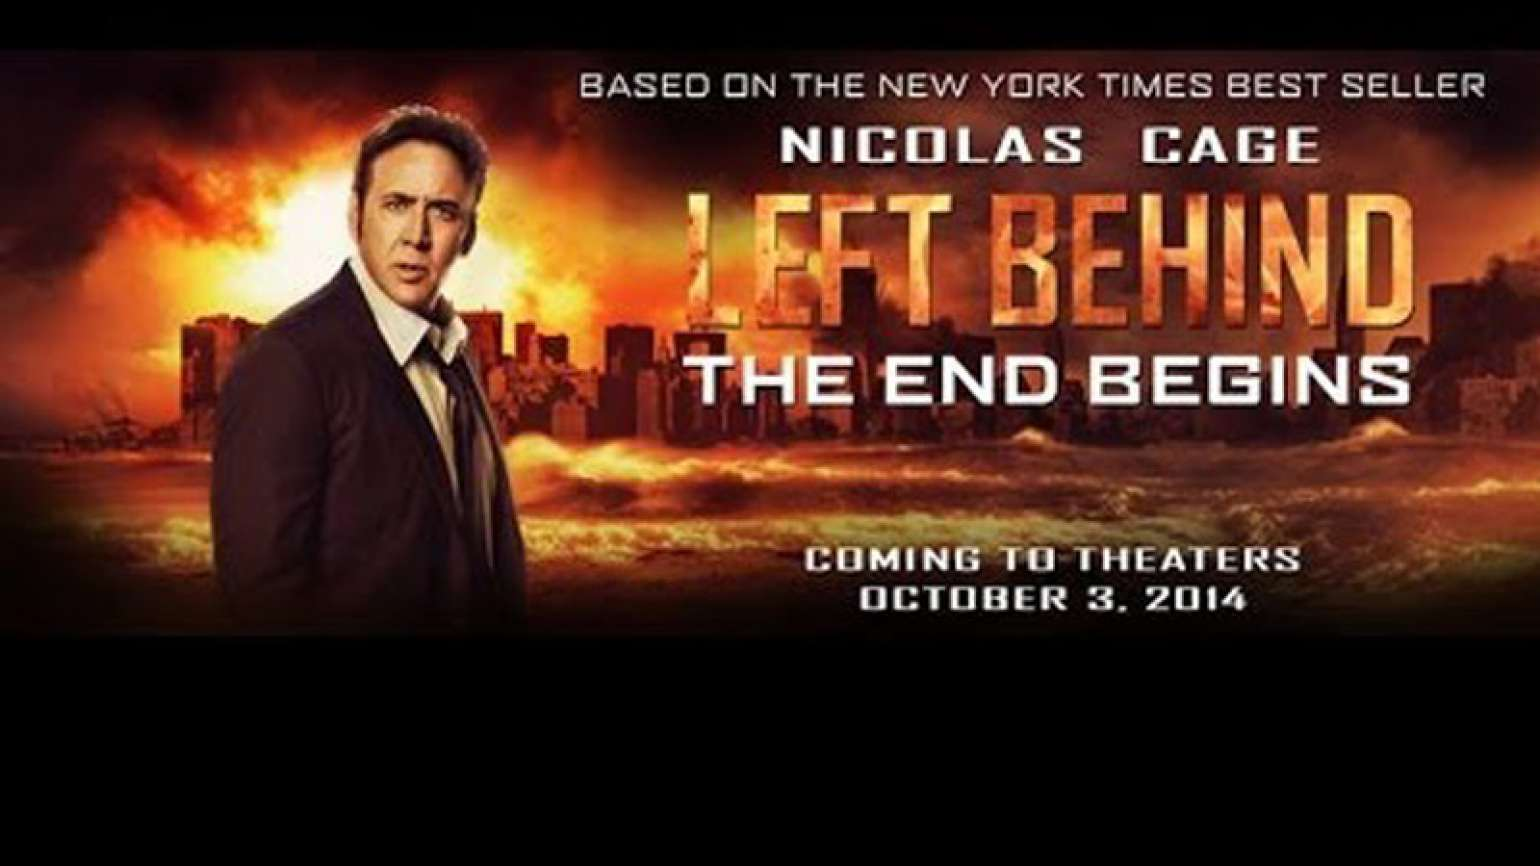 Nicolas Cage stands before fire in the movie poster for Left Behind